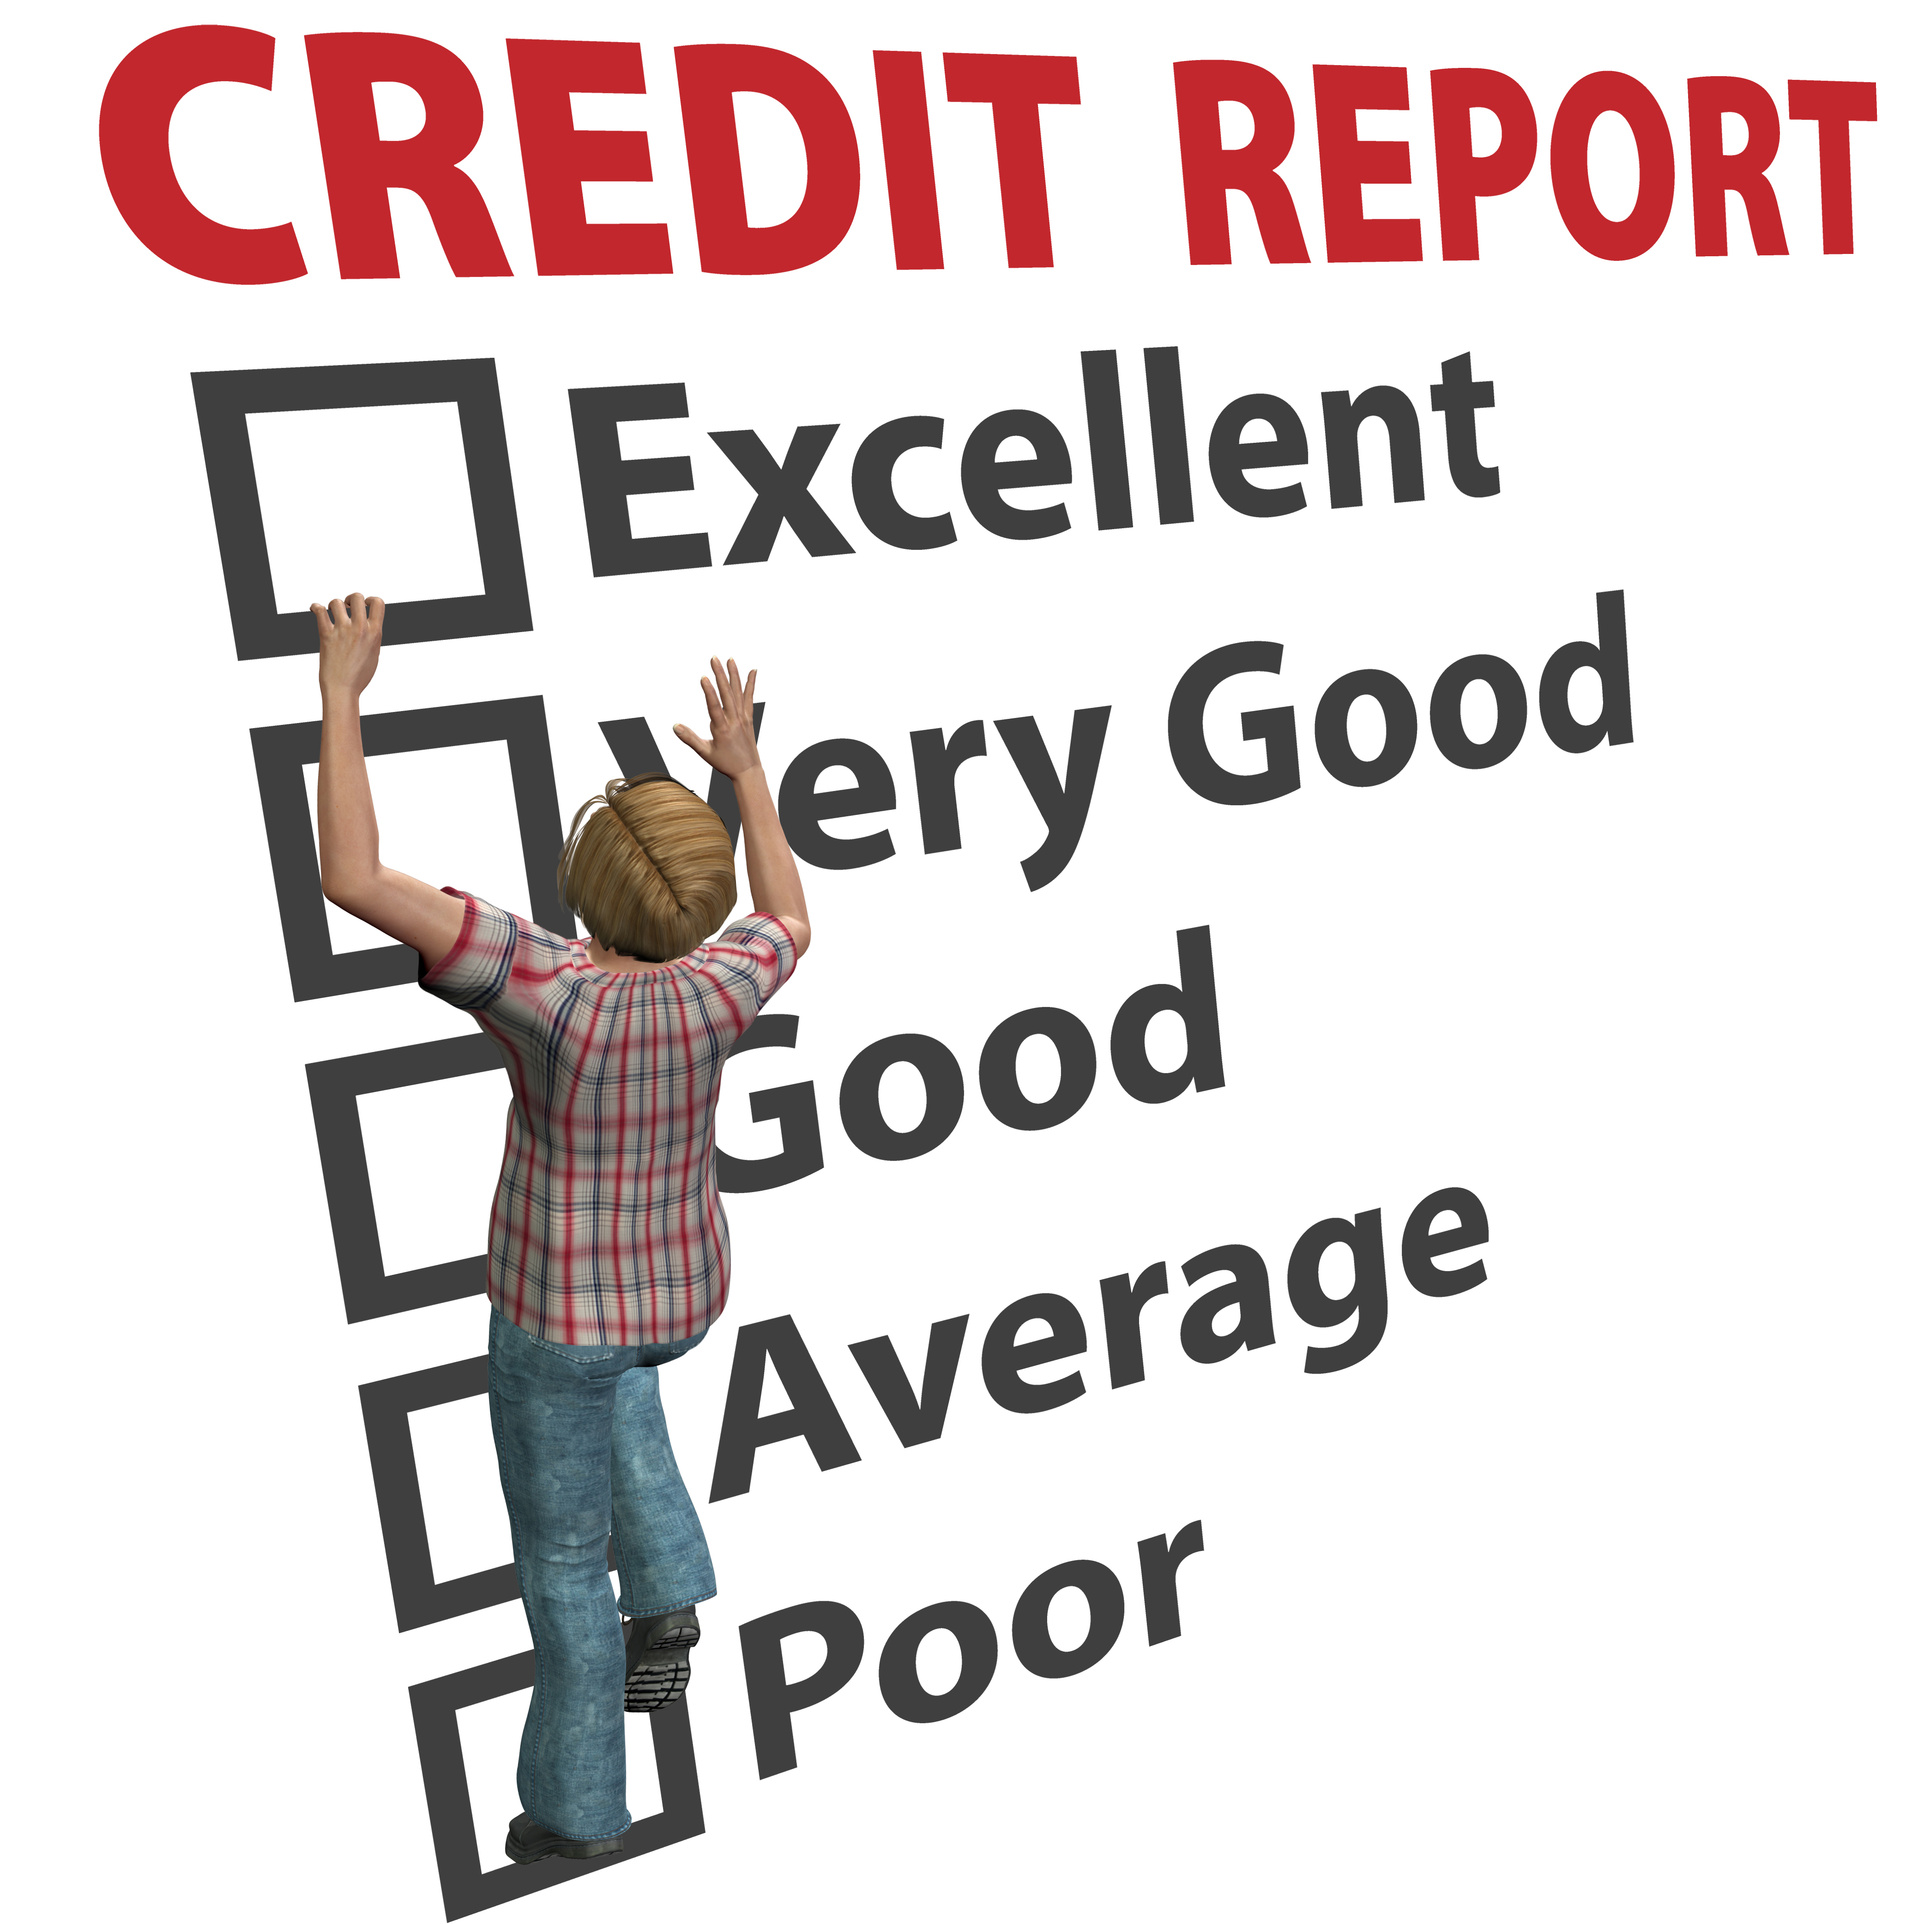 increase your credit score by increasing your credit limit